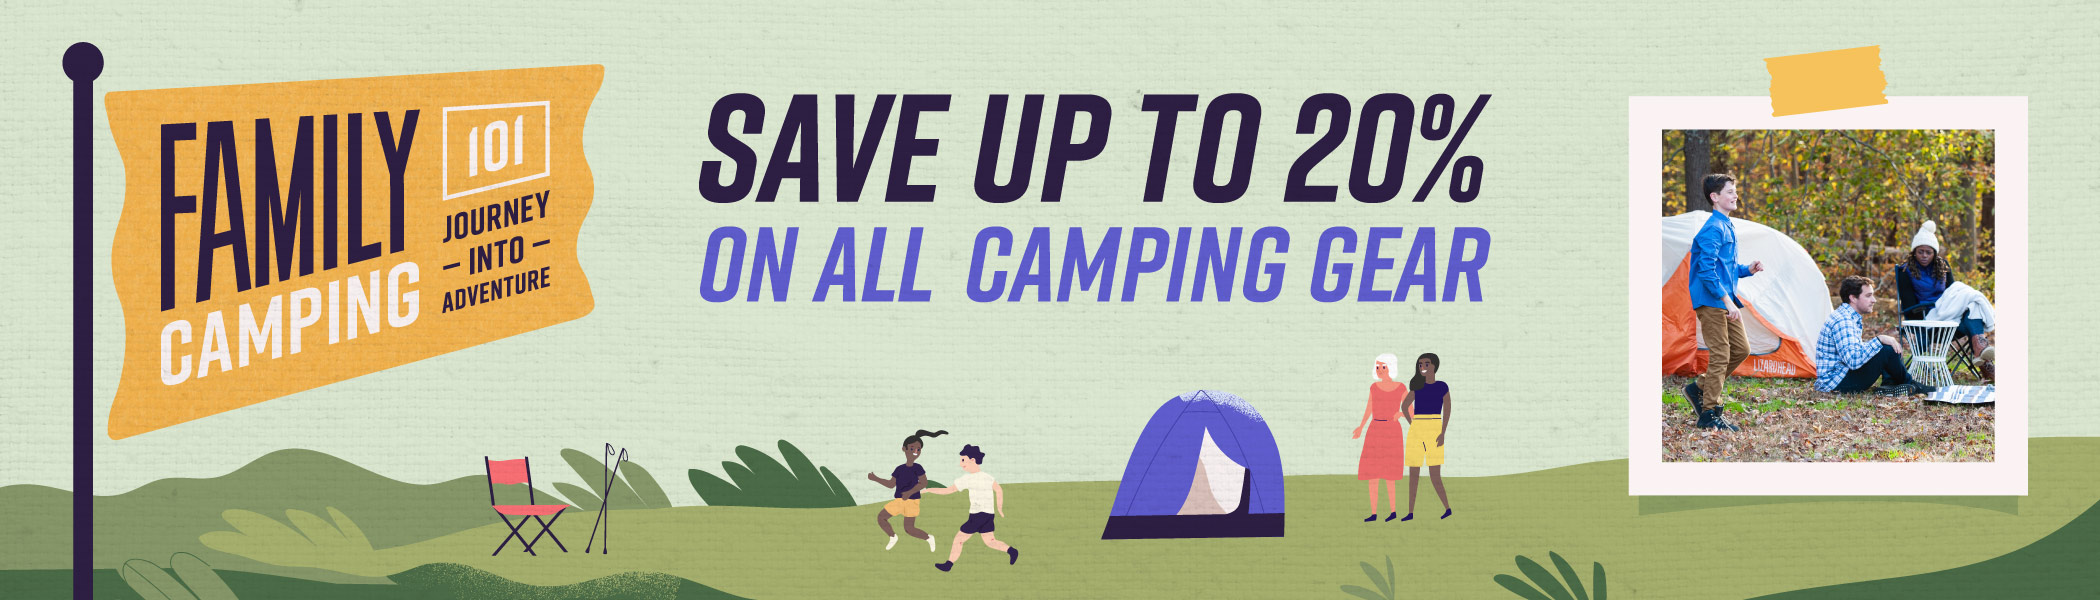 Family Camping 101 - Web Banner Graphic